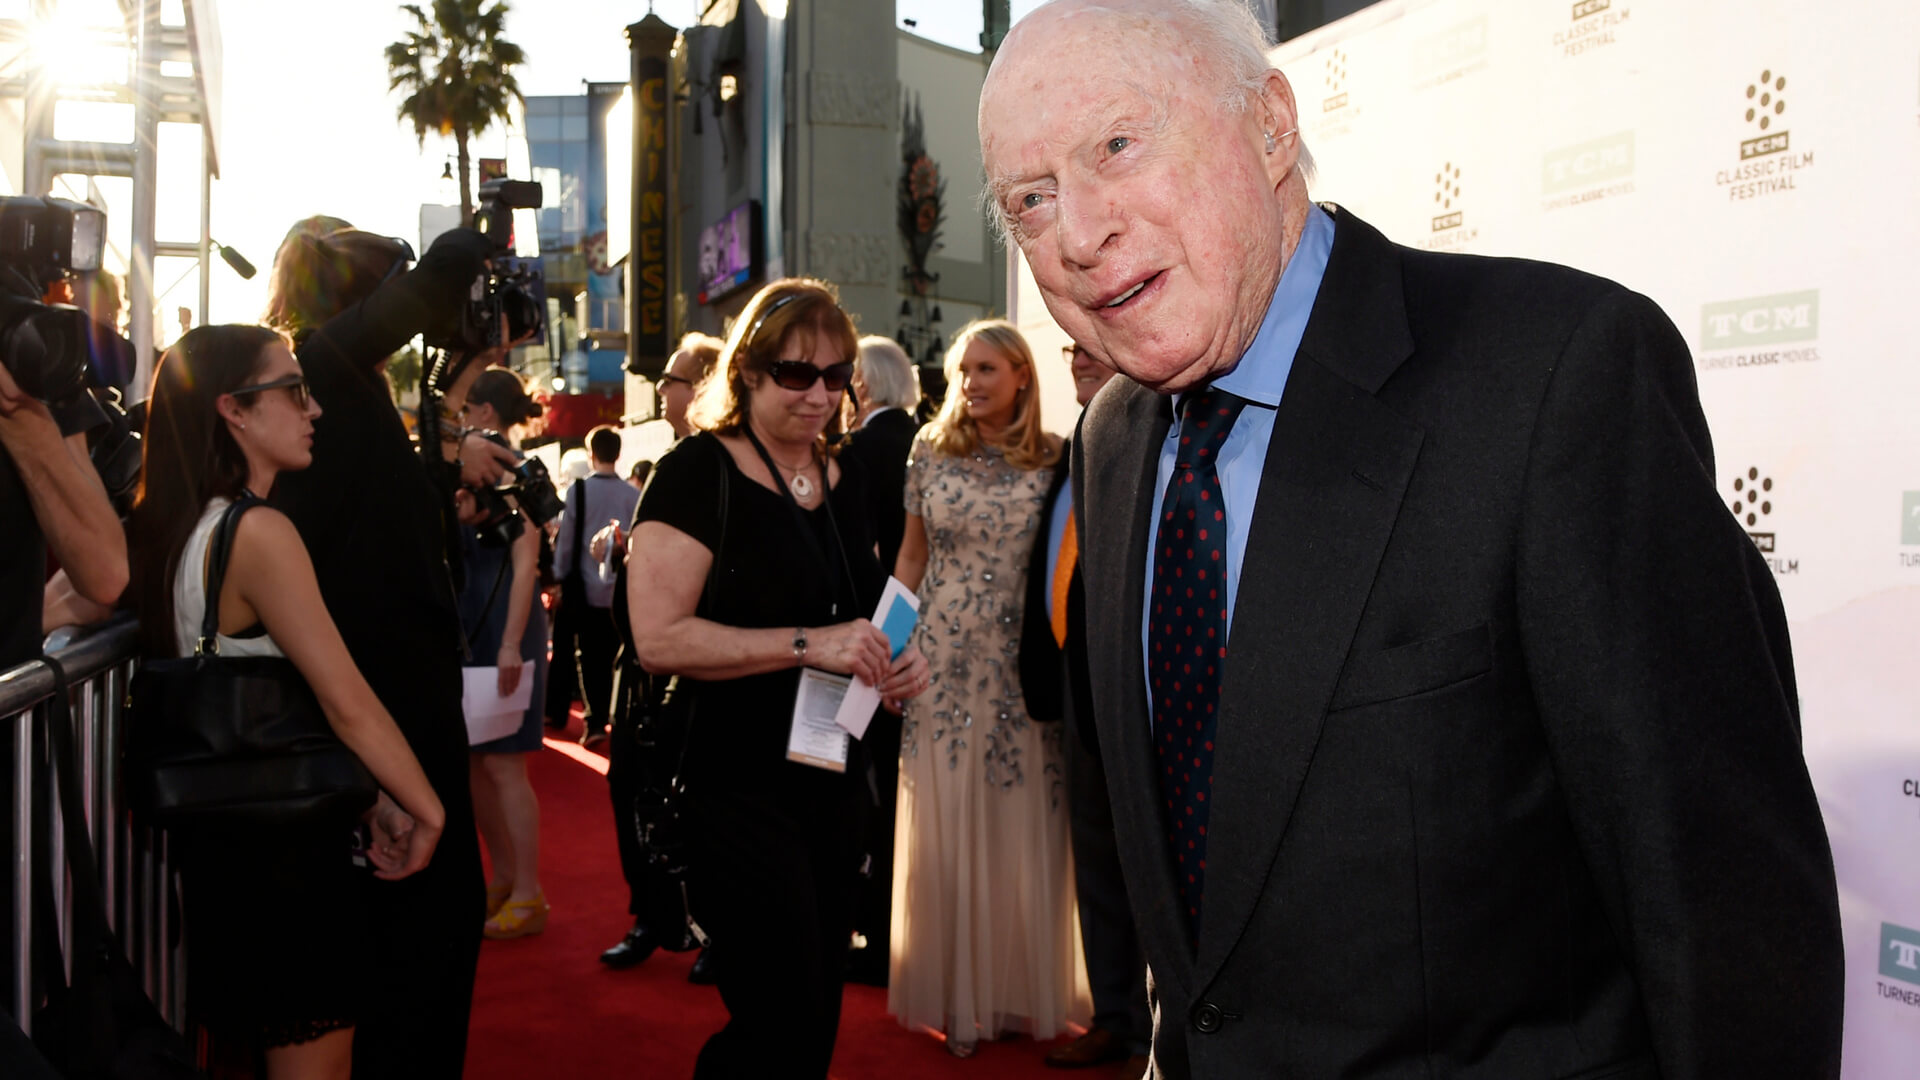 Norman Lloyd, a Regular on St. Elsewhere, Passes Away Aged 106